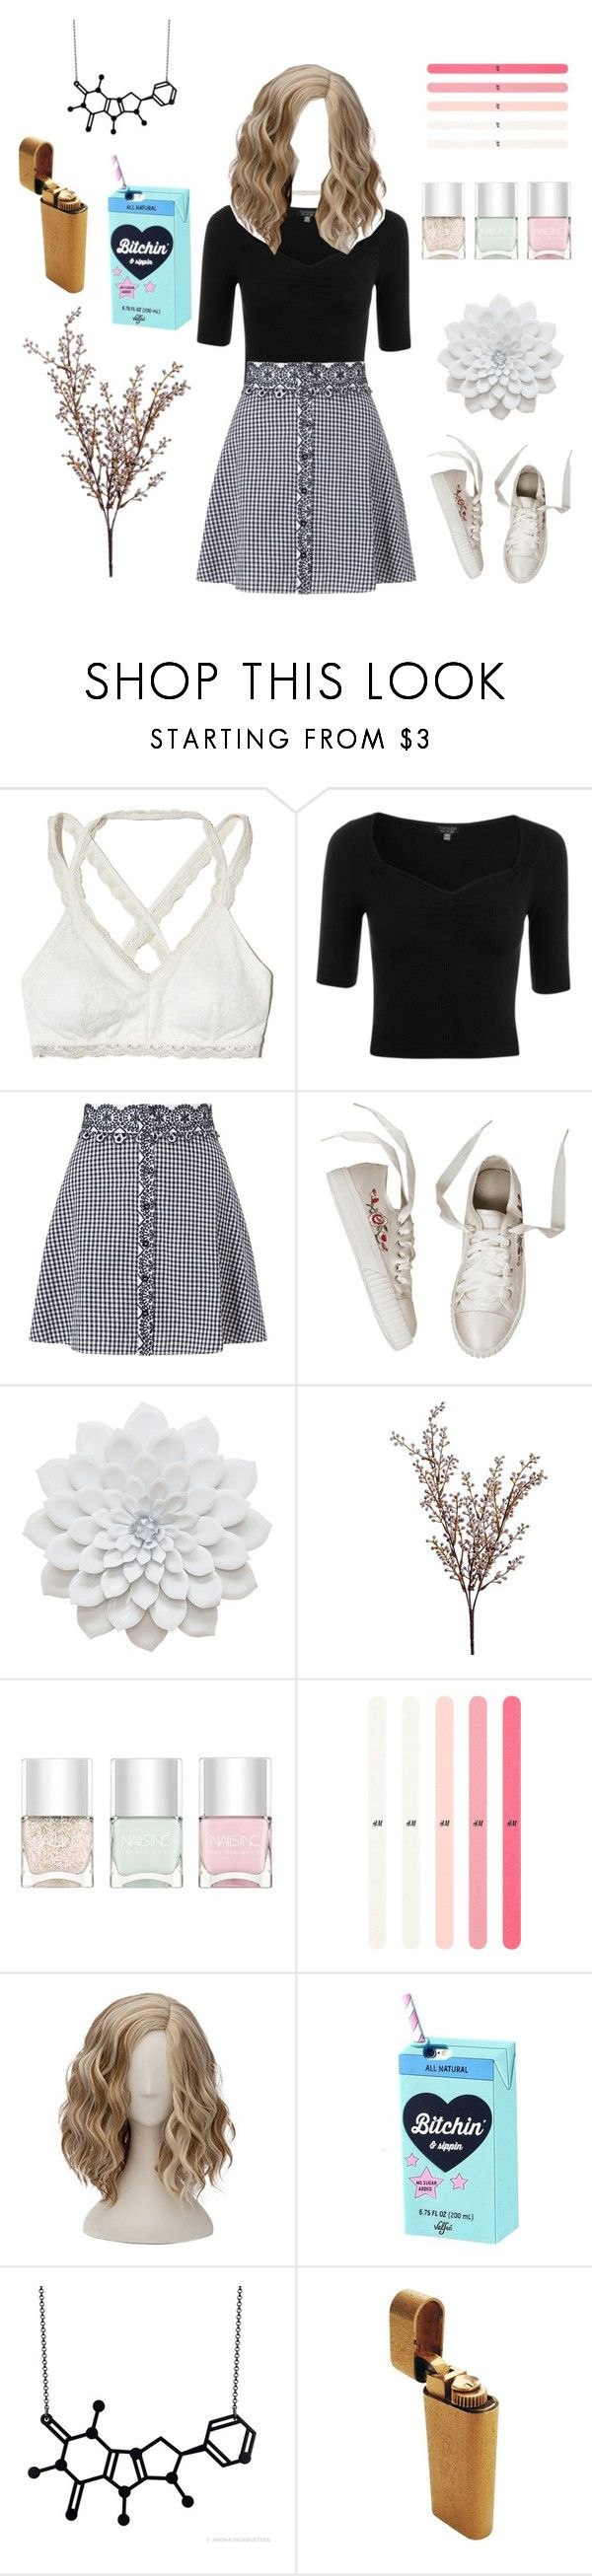 """Untitled #58"" by districttributes ❤ liked on Polyvore featuring Hollister Co., Topshop, Miss Selfridge, Wyld Home and Nails Inc."